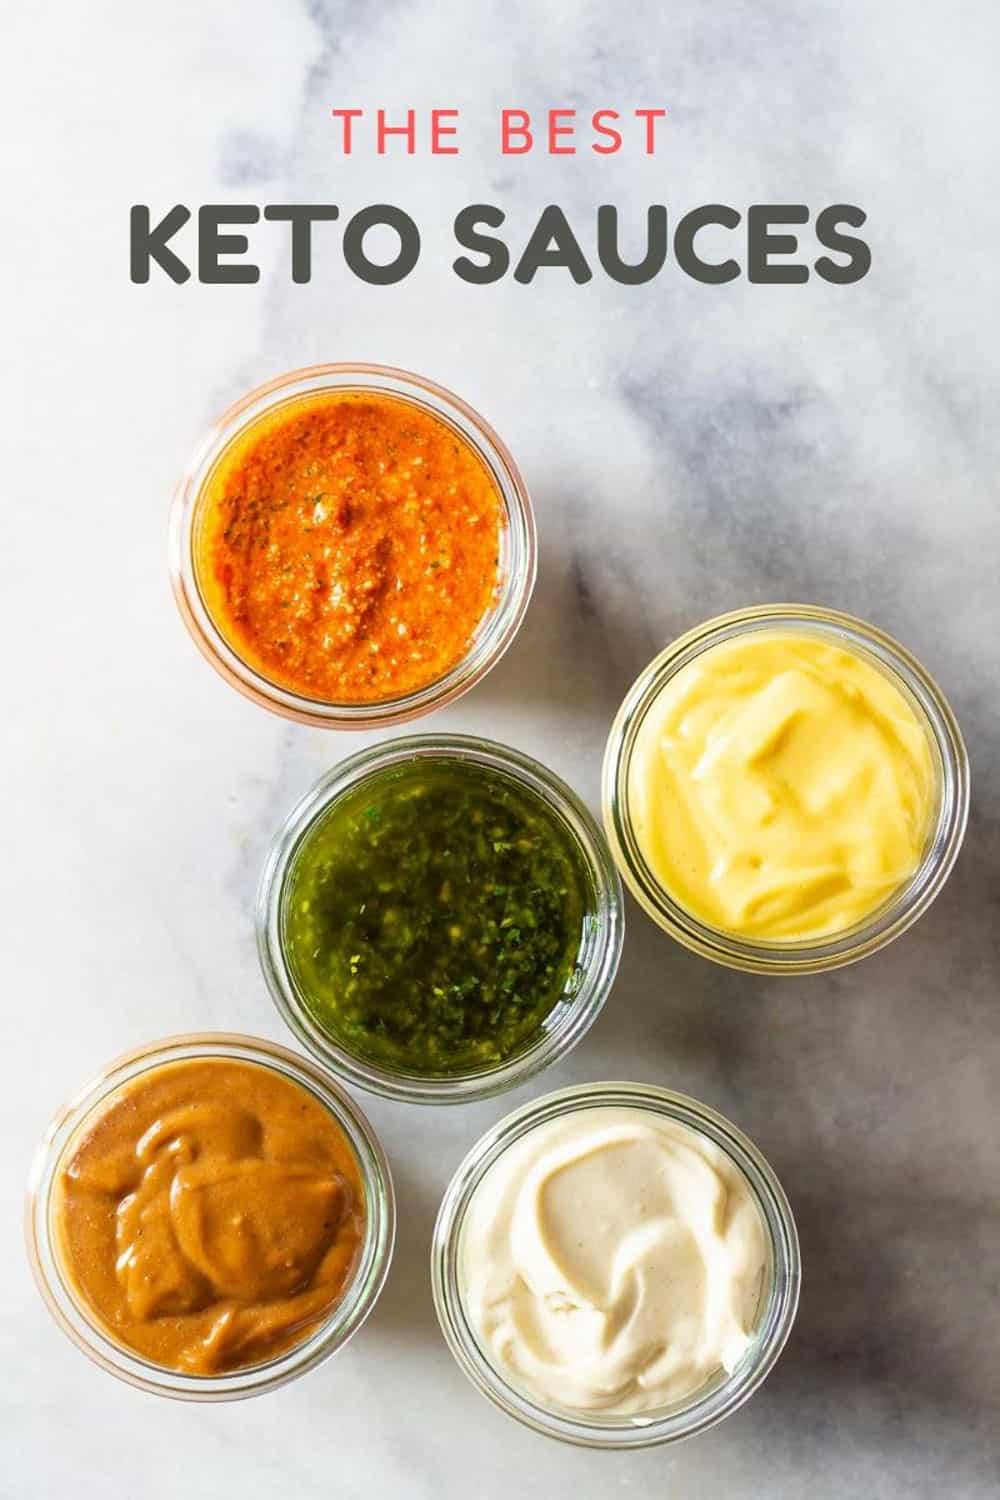 The Best Keto Sauces Green Healthy Cooking